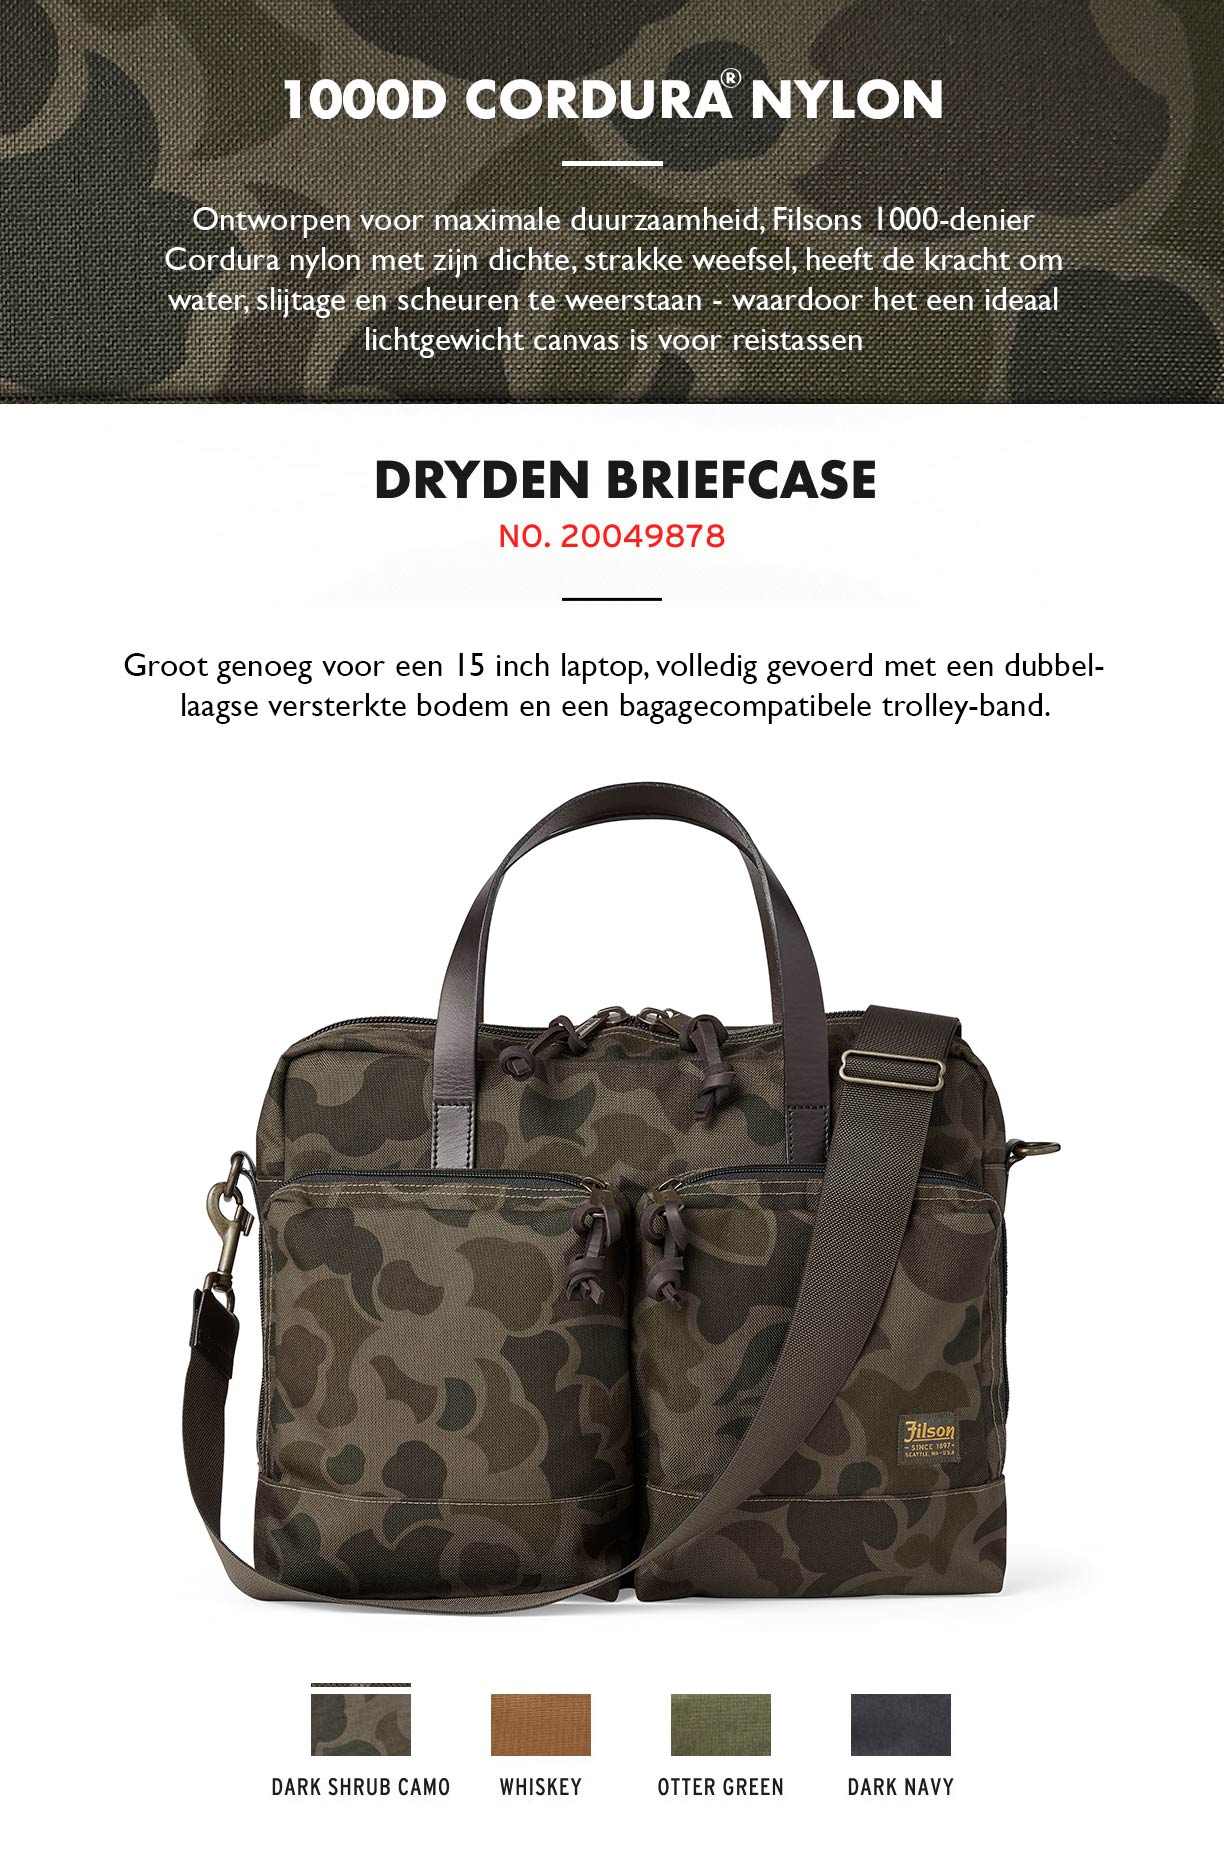 Filson Dryden Briefcase Dark Shrub Camo Product-information